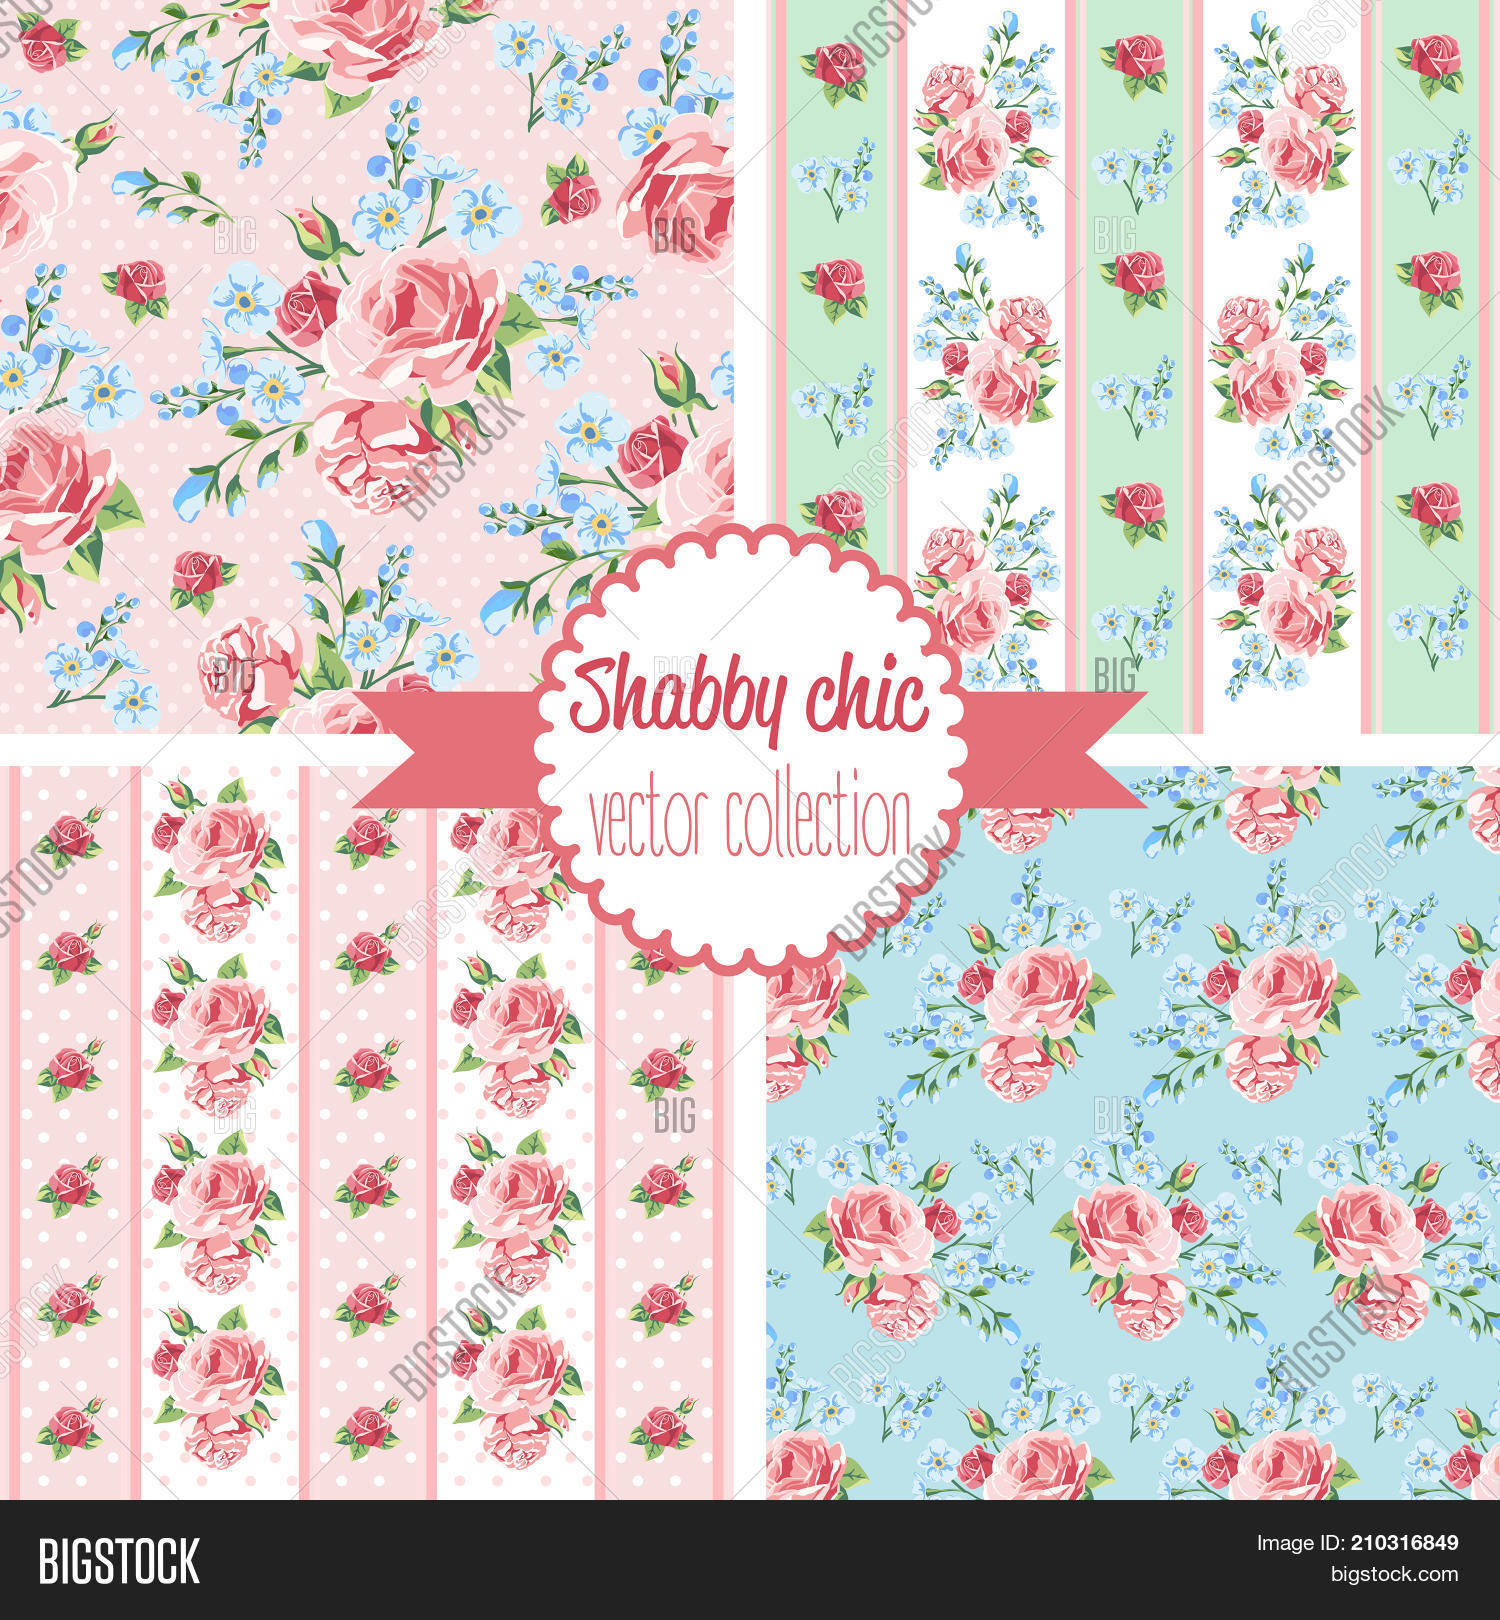 Shabby Chic Rose Vector Photo Free Trial Bigstock